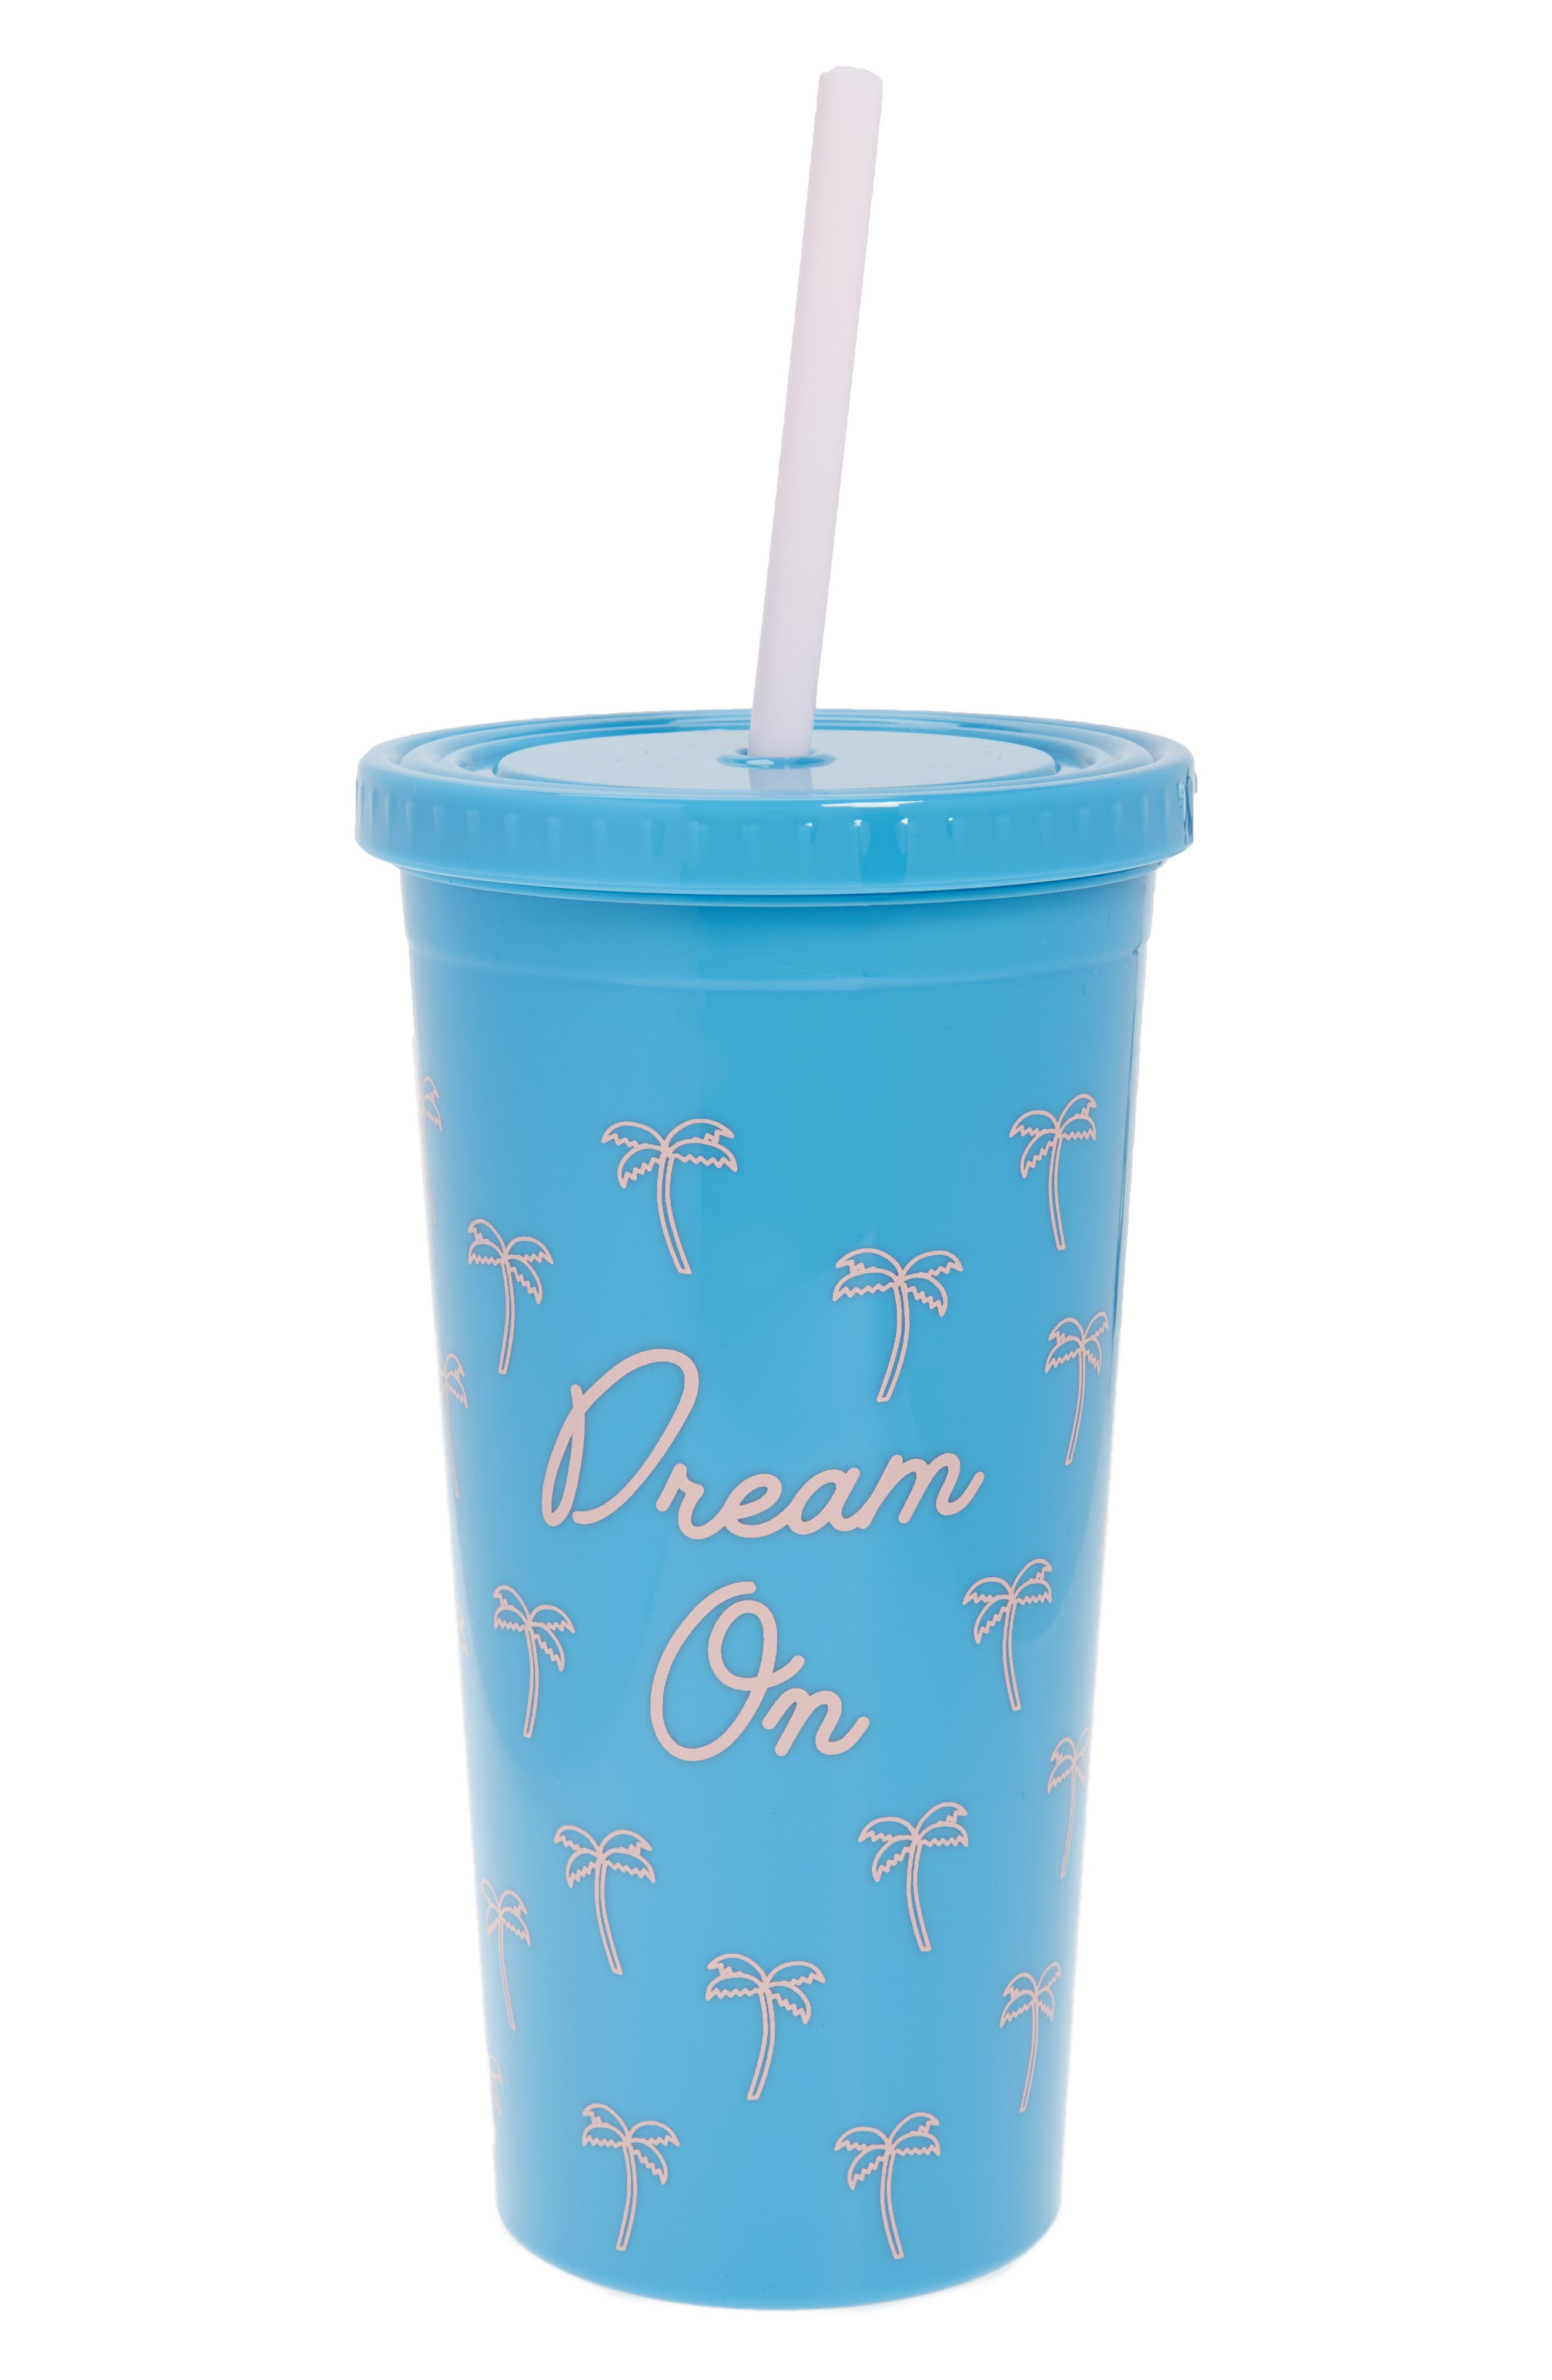 The Created Co. Dream On Tumbler & Straw